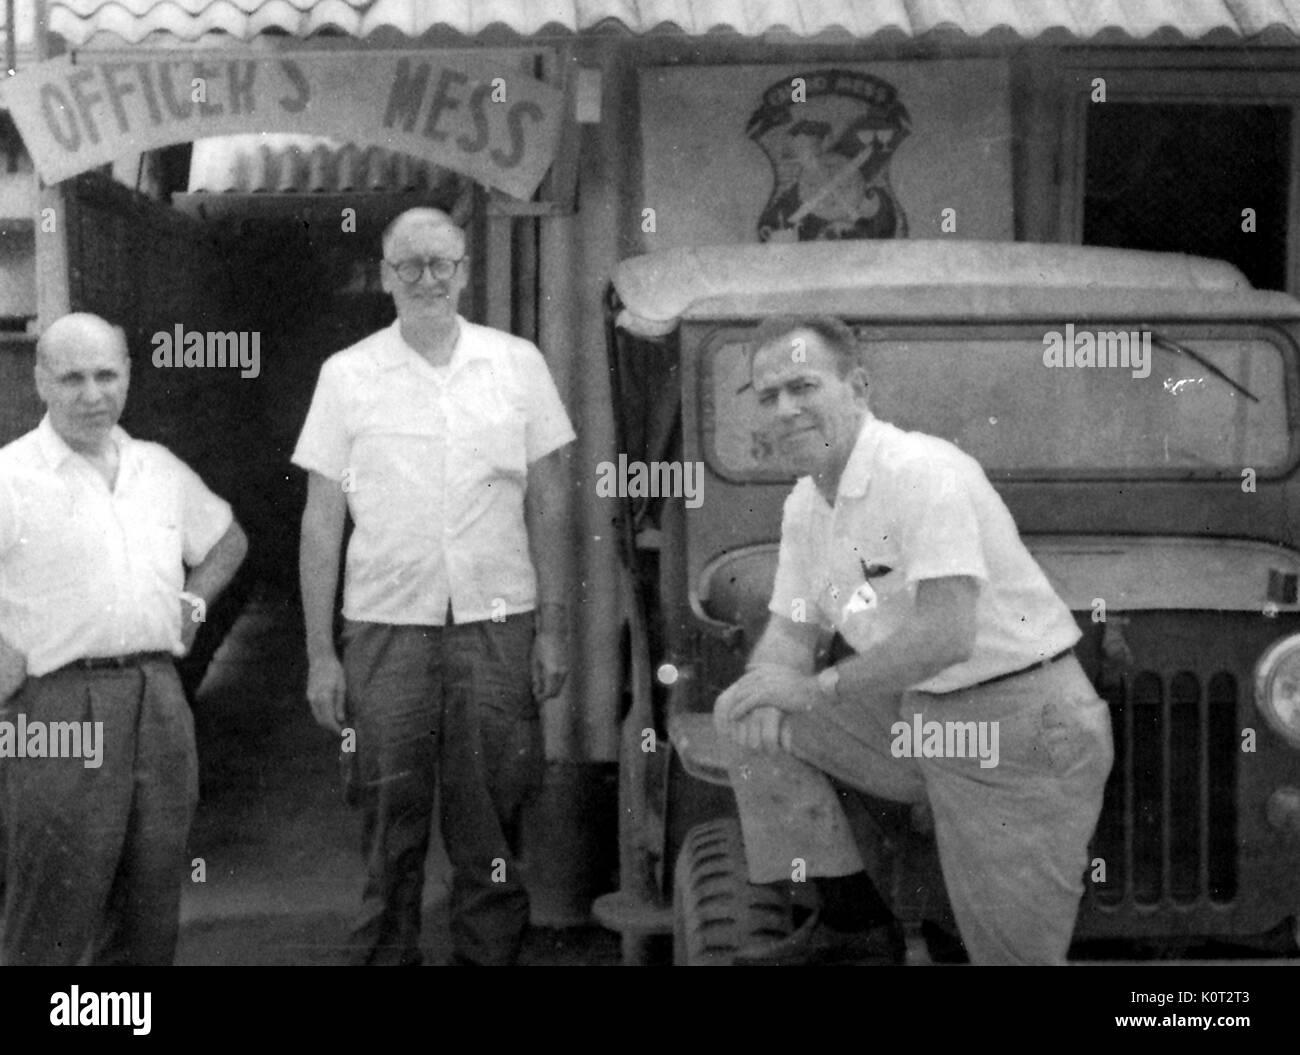 3 United States military officers standing in front of an officers mess hall in Vietnam during the Vietnam War, one officer with his foot up on the tire of a Jeep, 1966. - Stock Image